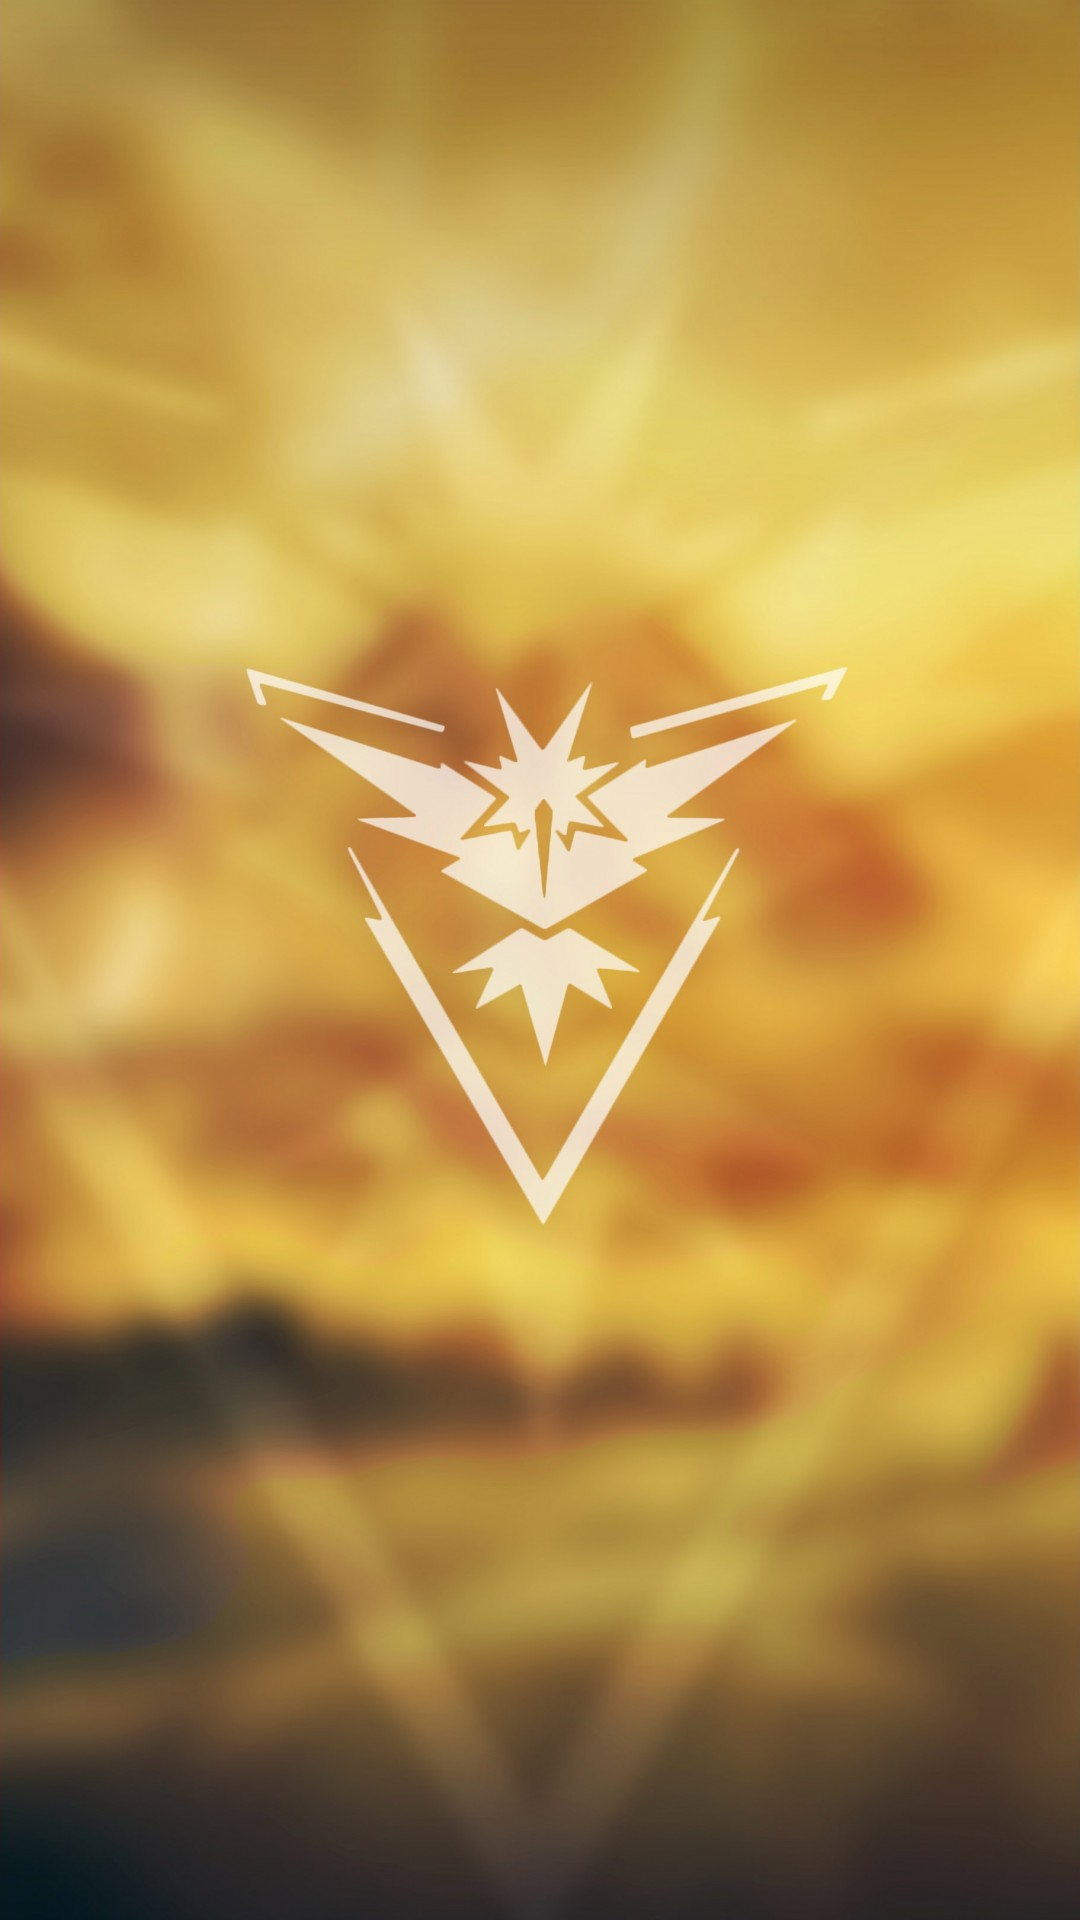 Team Instinct Pokemon Go Iphone Wallpaper